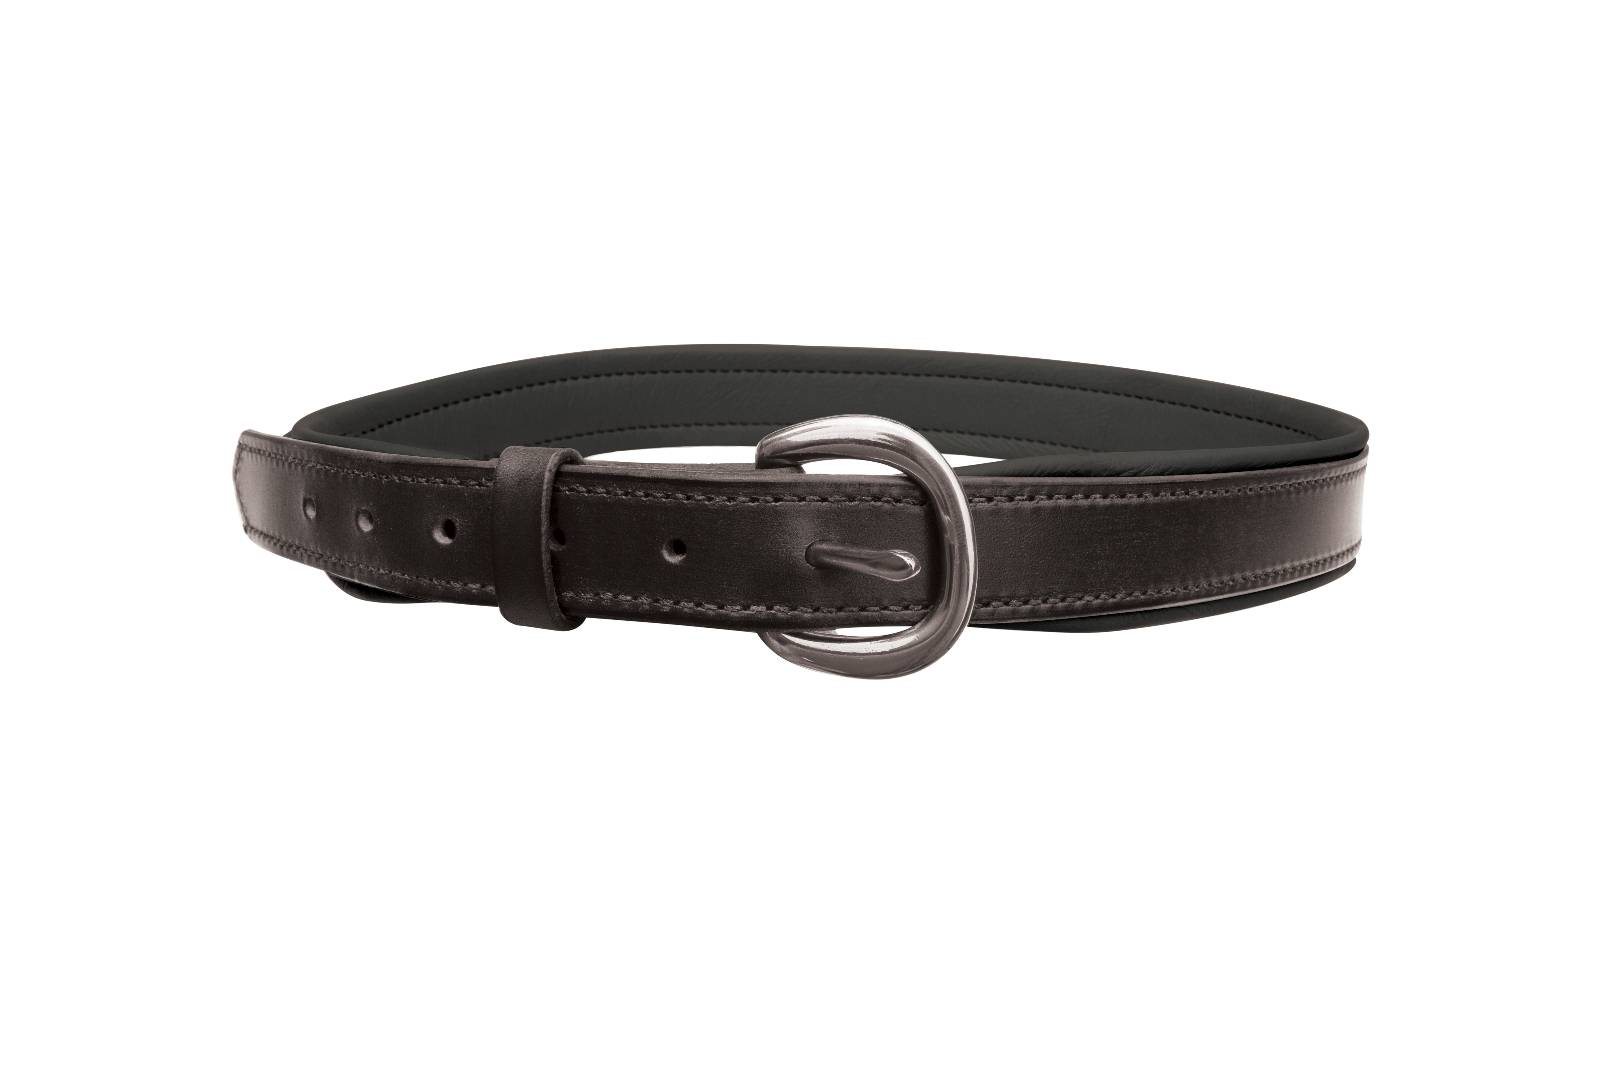 Perri's Wide Padded Leather Belt